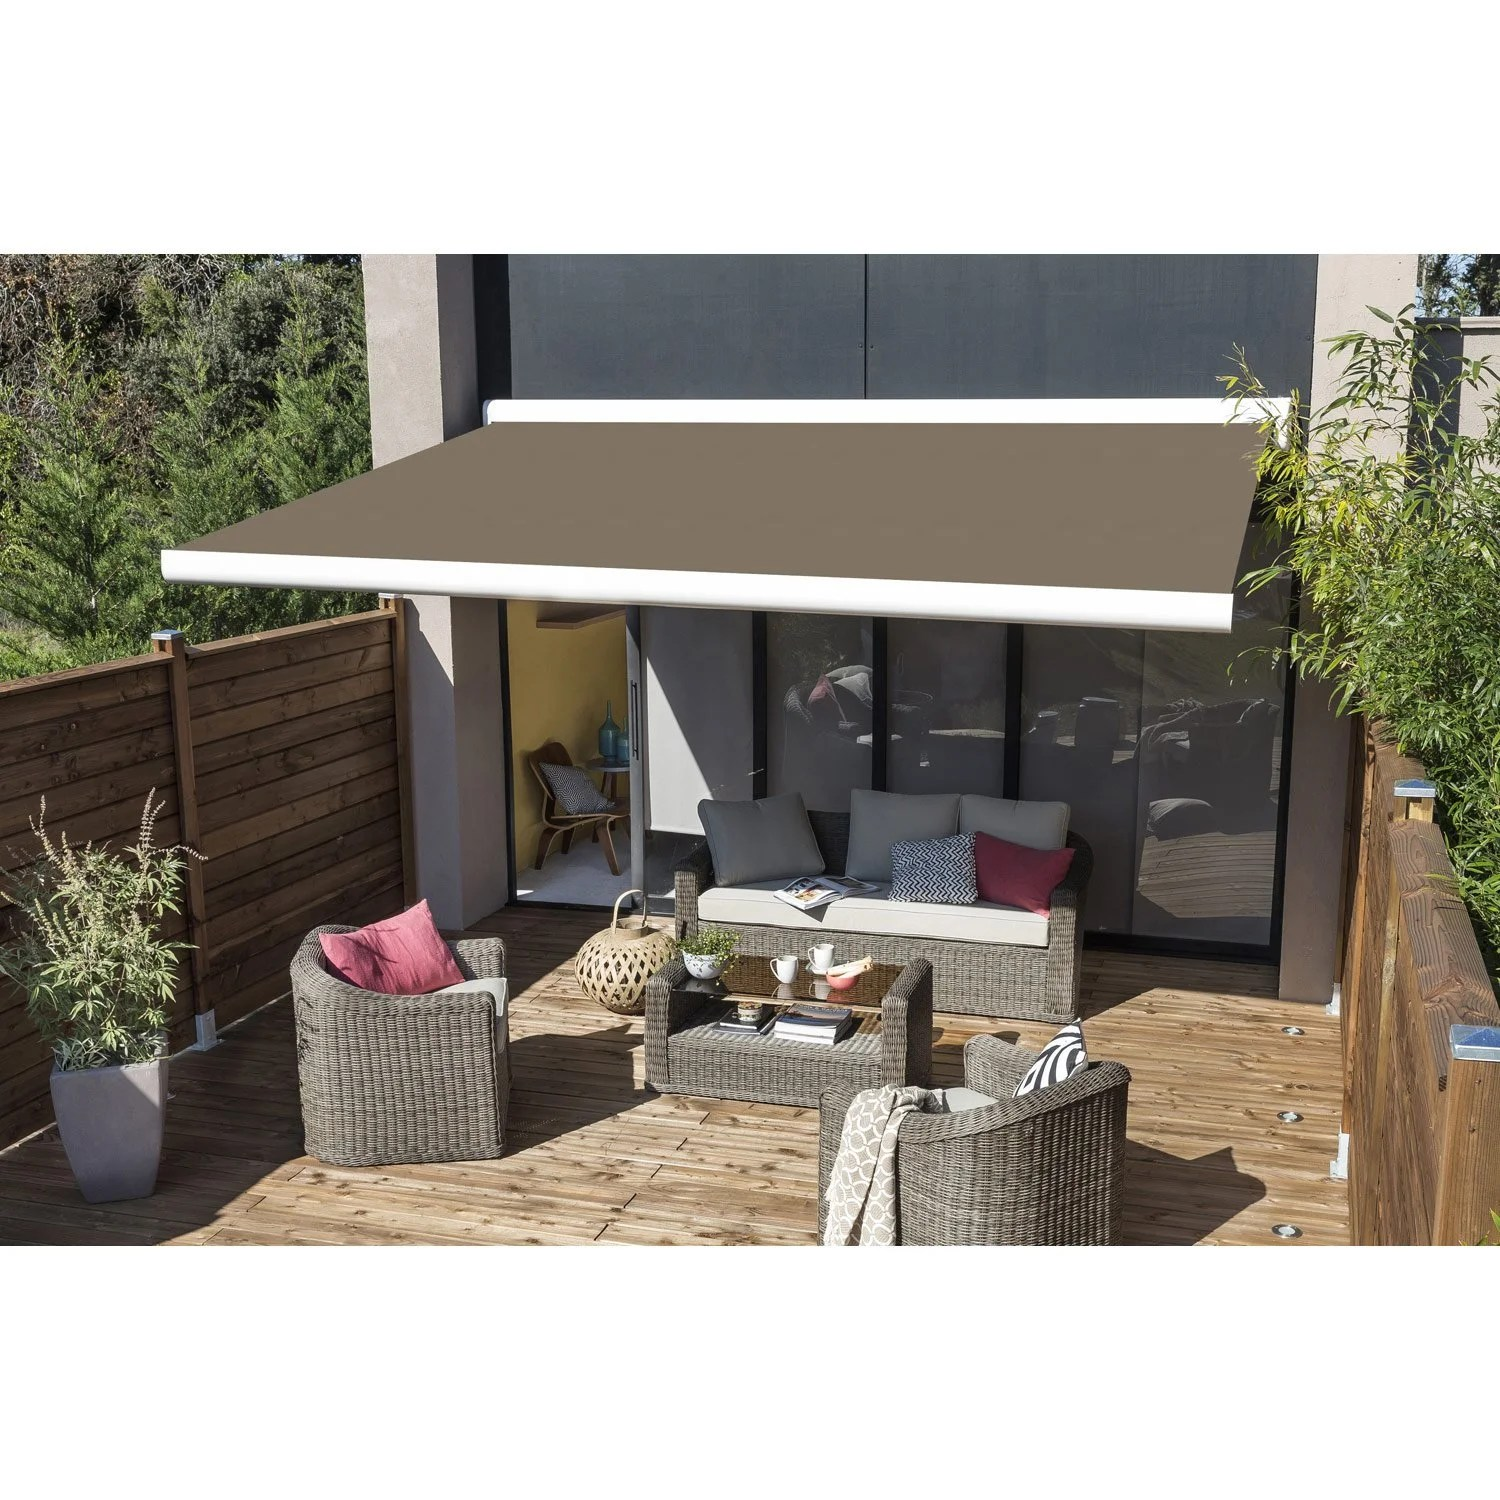 Store Terrasse Store Banne Manuel 4x3 Top Store Banne Manuel Fabrication